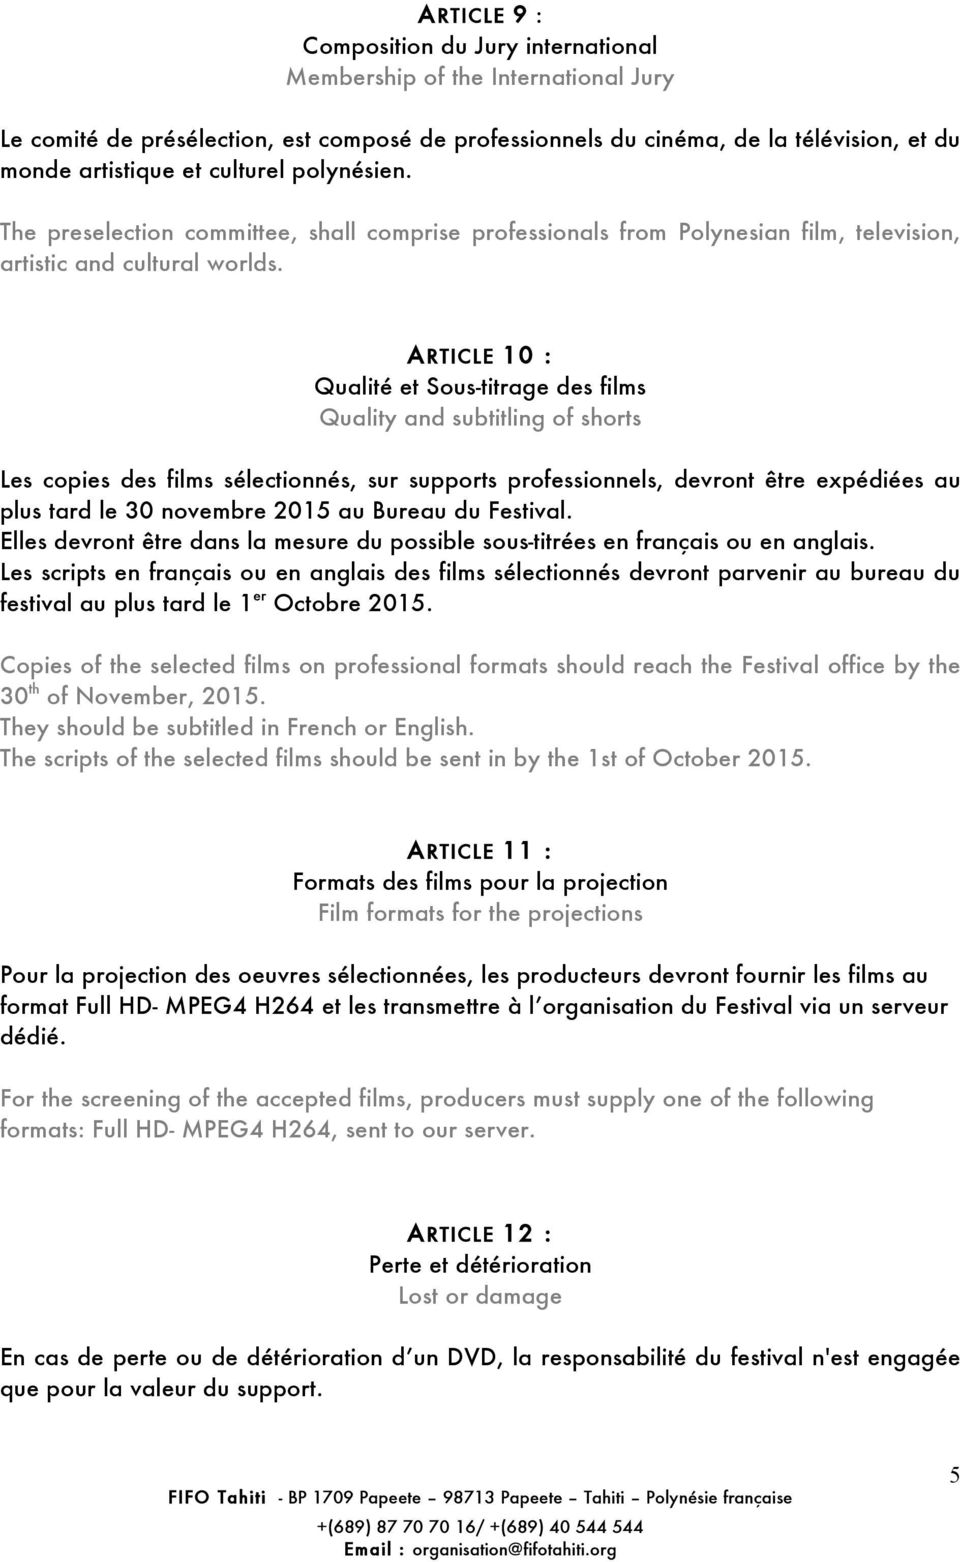 ARTICLE 10 : Qualité et Sous-titrage des films Quality and subtitling of shorts Les copies des films sélectionnés, sur supports professionnels, devront être expédiées au plus tard le 30 novembre 2015